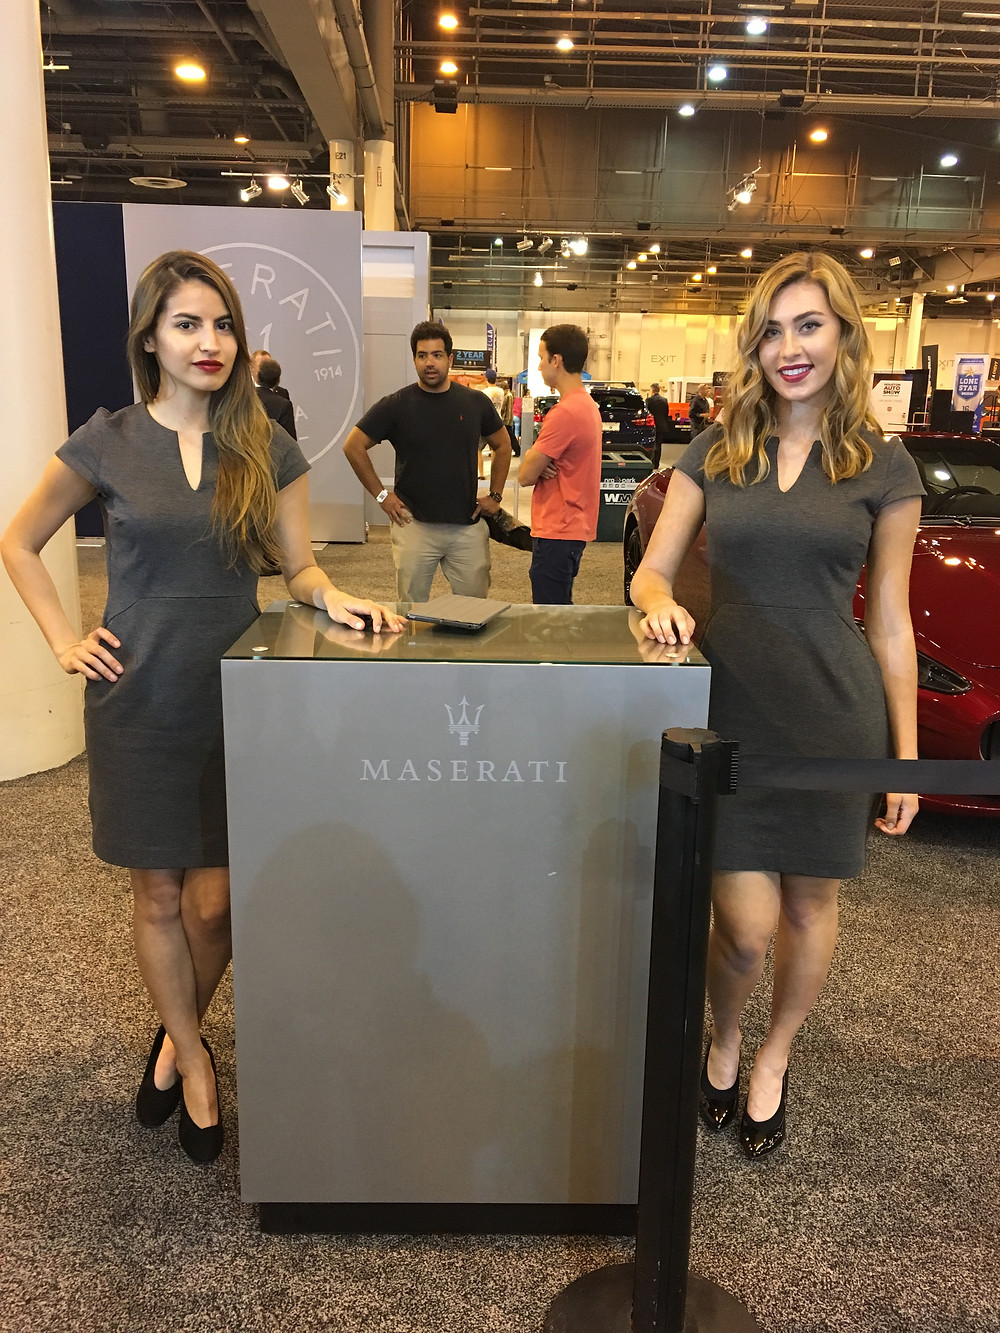 maserati model hostesses, houston auto show, attract agency, nationwide event models